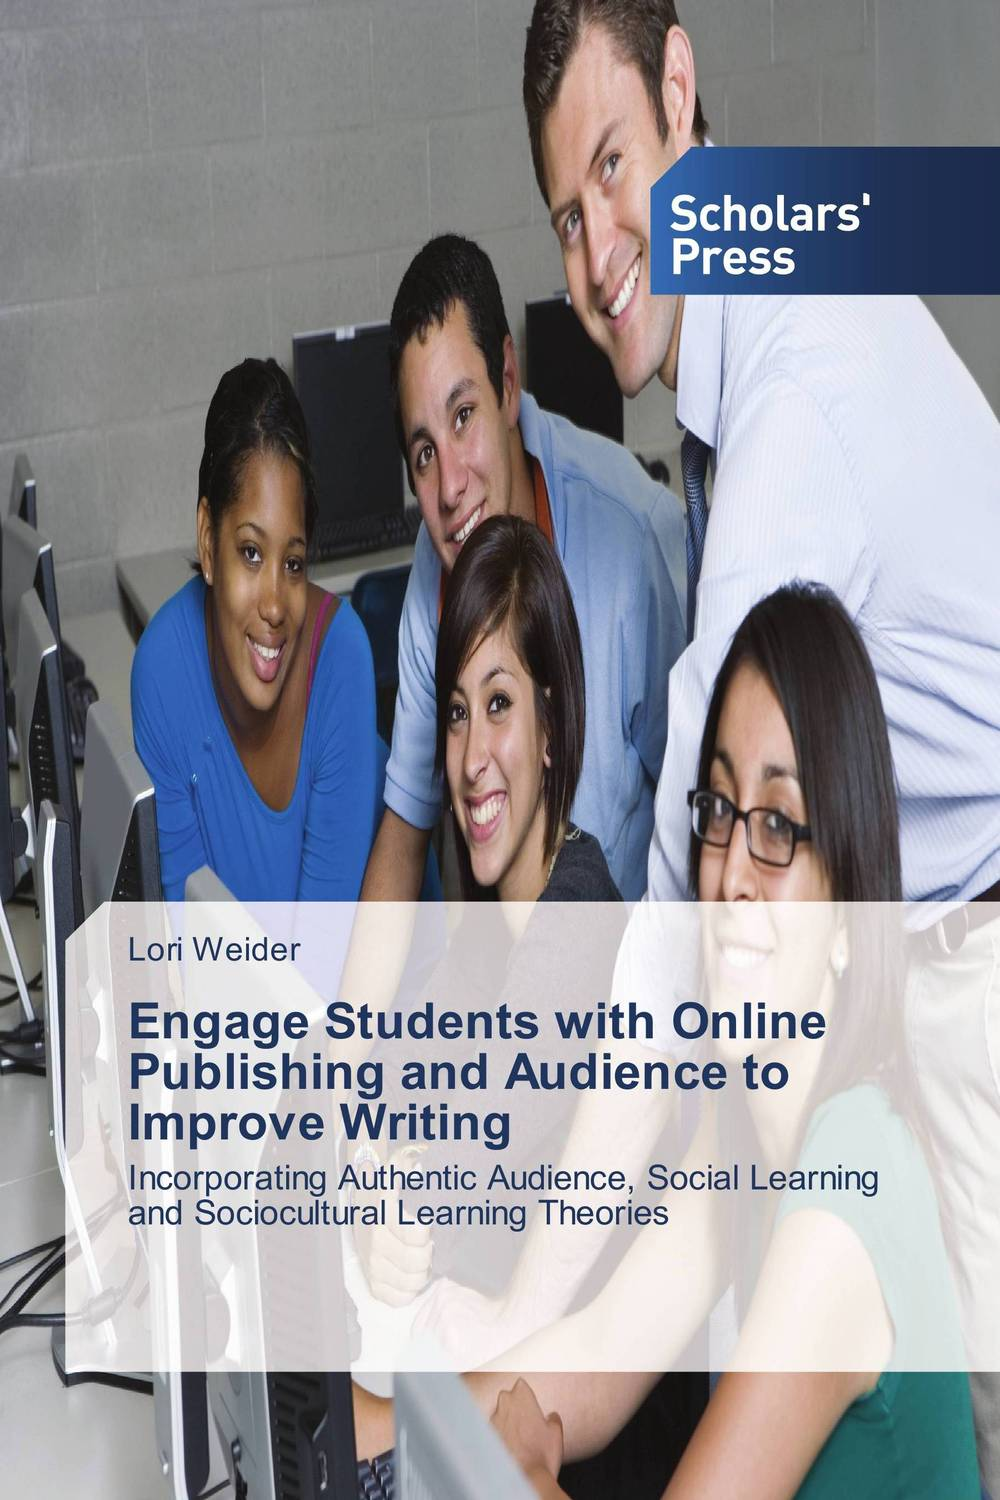 Engage Students with Online Publishing and Audience to Improve Writing